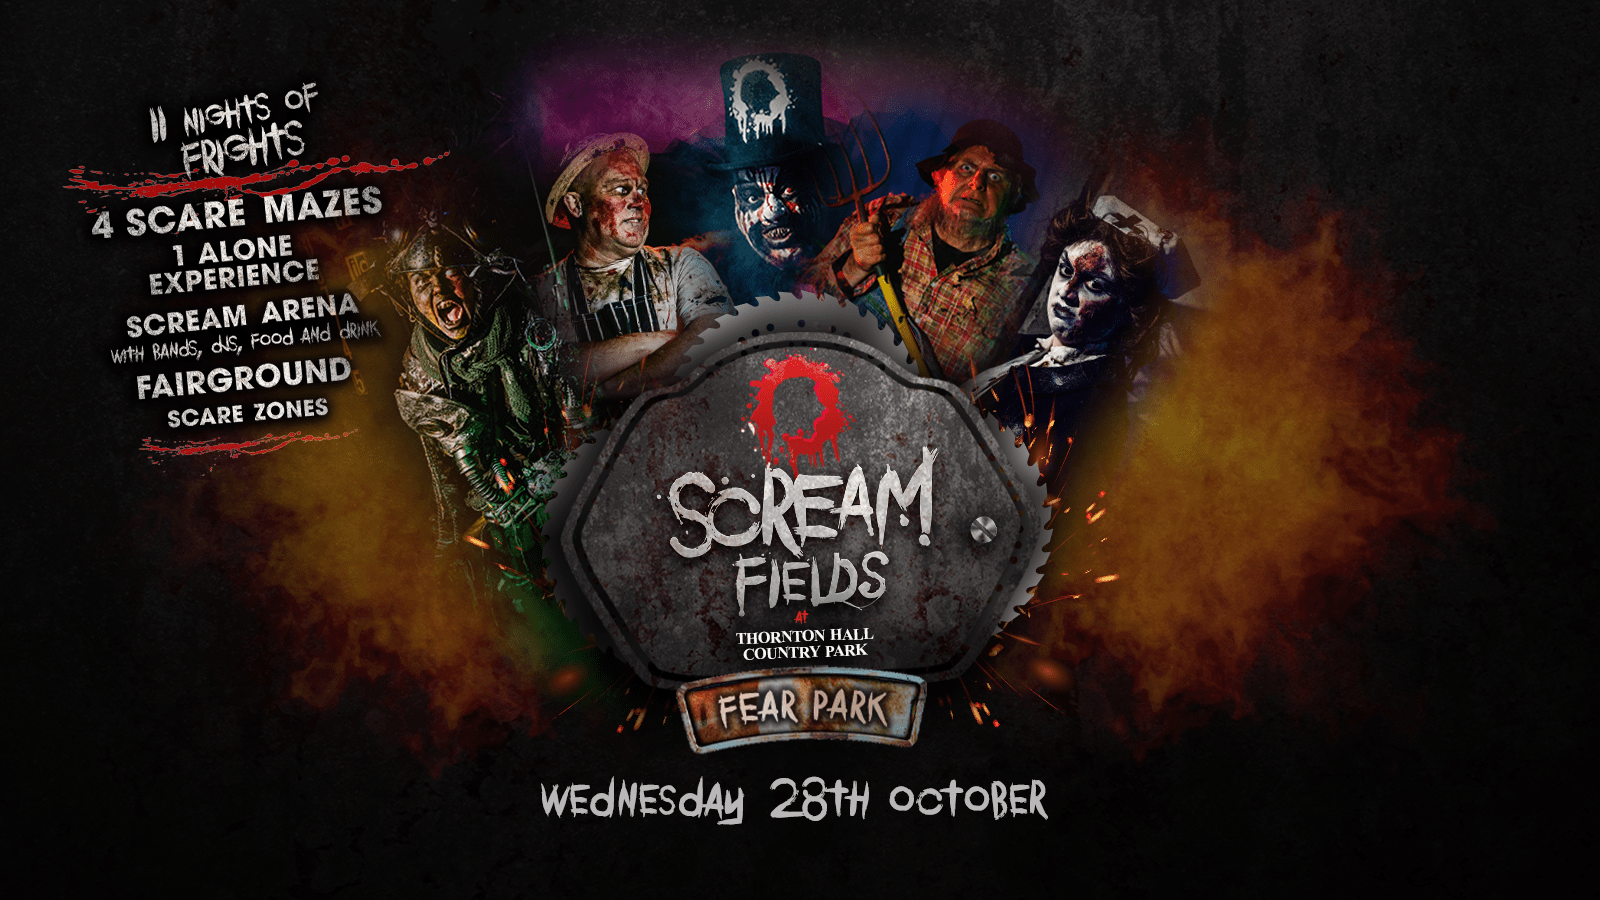 6.00PM – Screamfields: Wednesday 28th October 2020